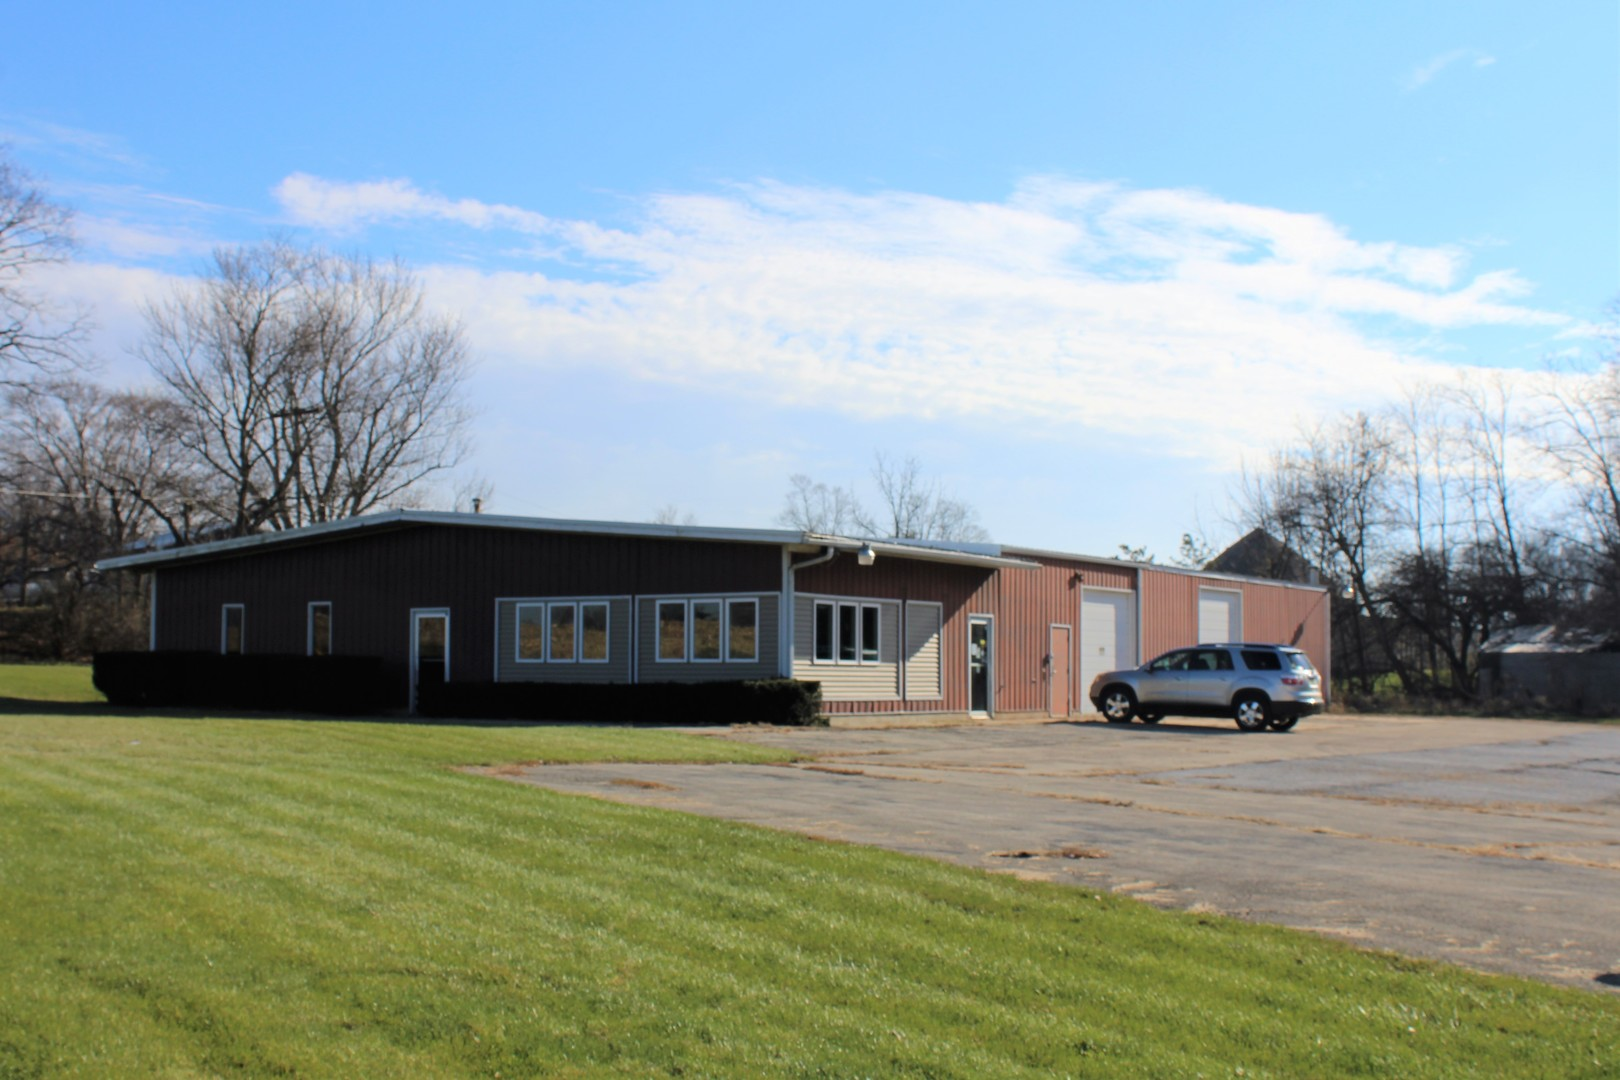 Lots of Potential on 3 */- acres!  The 1978 building is 6000 square feet on a poured foundation with lumber from Rylander, Wisconsin, offering  2 x 10 rafters and 2 x 6 walls. The office / sales area is 30' x 60' with 2: 1/2 baths.  There is a 30' x 30' basement under part of this with 9' ceilings.  A slider door opens from the shop area, so the cars could get to the show room floor.    The 70' x 60' heated shop has 2 hoists and an underground exhaust system, parts room and 1/2 bath.   The drainage system is above ground, commercial septic system, no buried fuel tanks, 3 garage doors, one allows room for a motor home. This flexible property was built for an auto dealership, but can also suit  your needs!  The building was constructed so it could be added on to.   Additionally, there is a cement foundation 30' x 100' with a loading dock  On the west end, south of the existing building. Traffic Count per IDOT 6950 per day.  Check out the aerial photos!